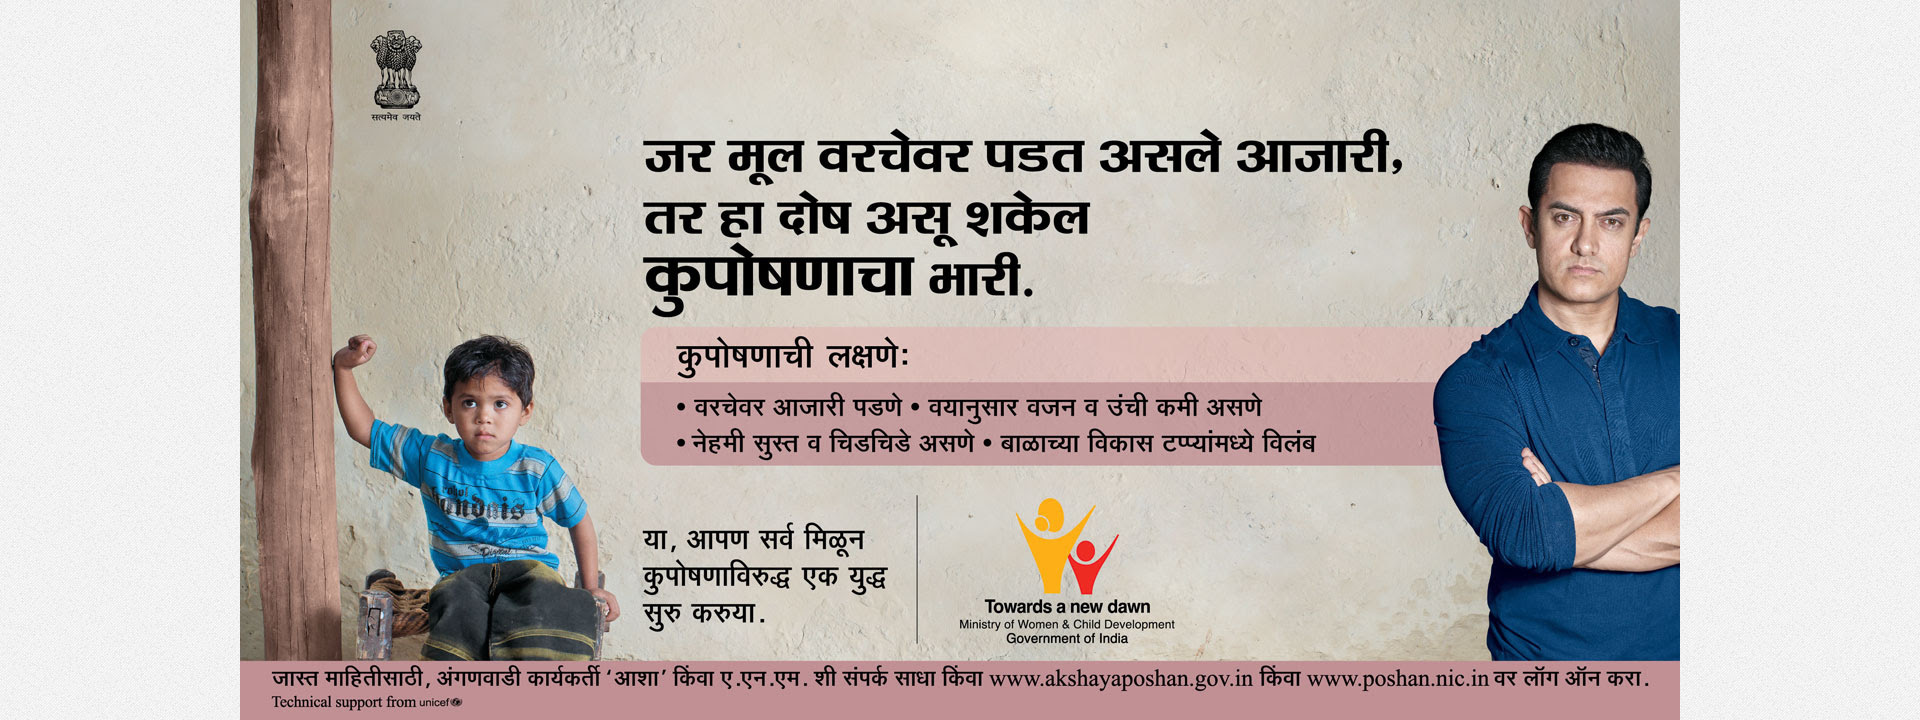 old age home quotes in marathi